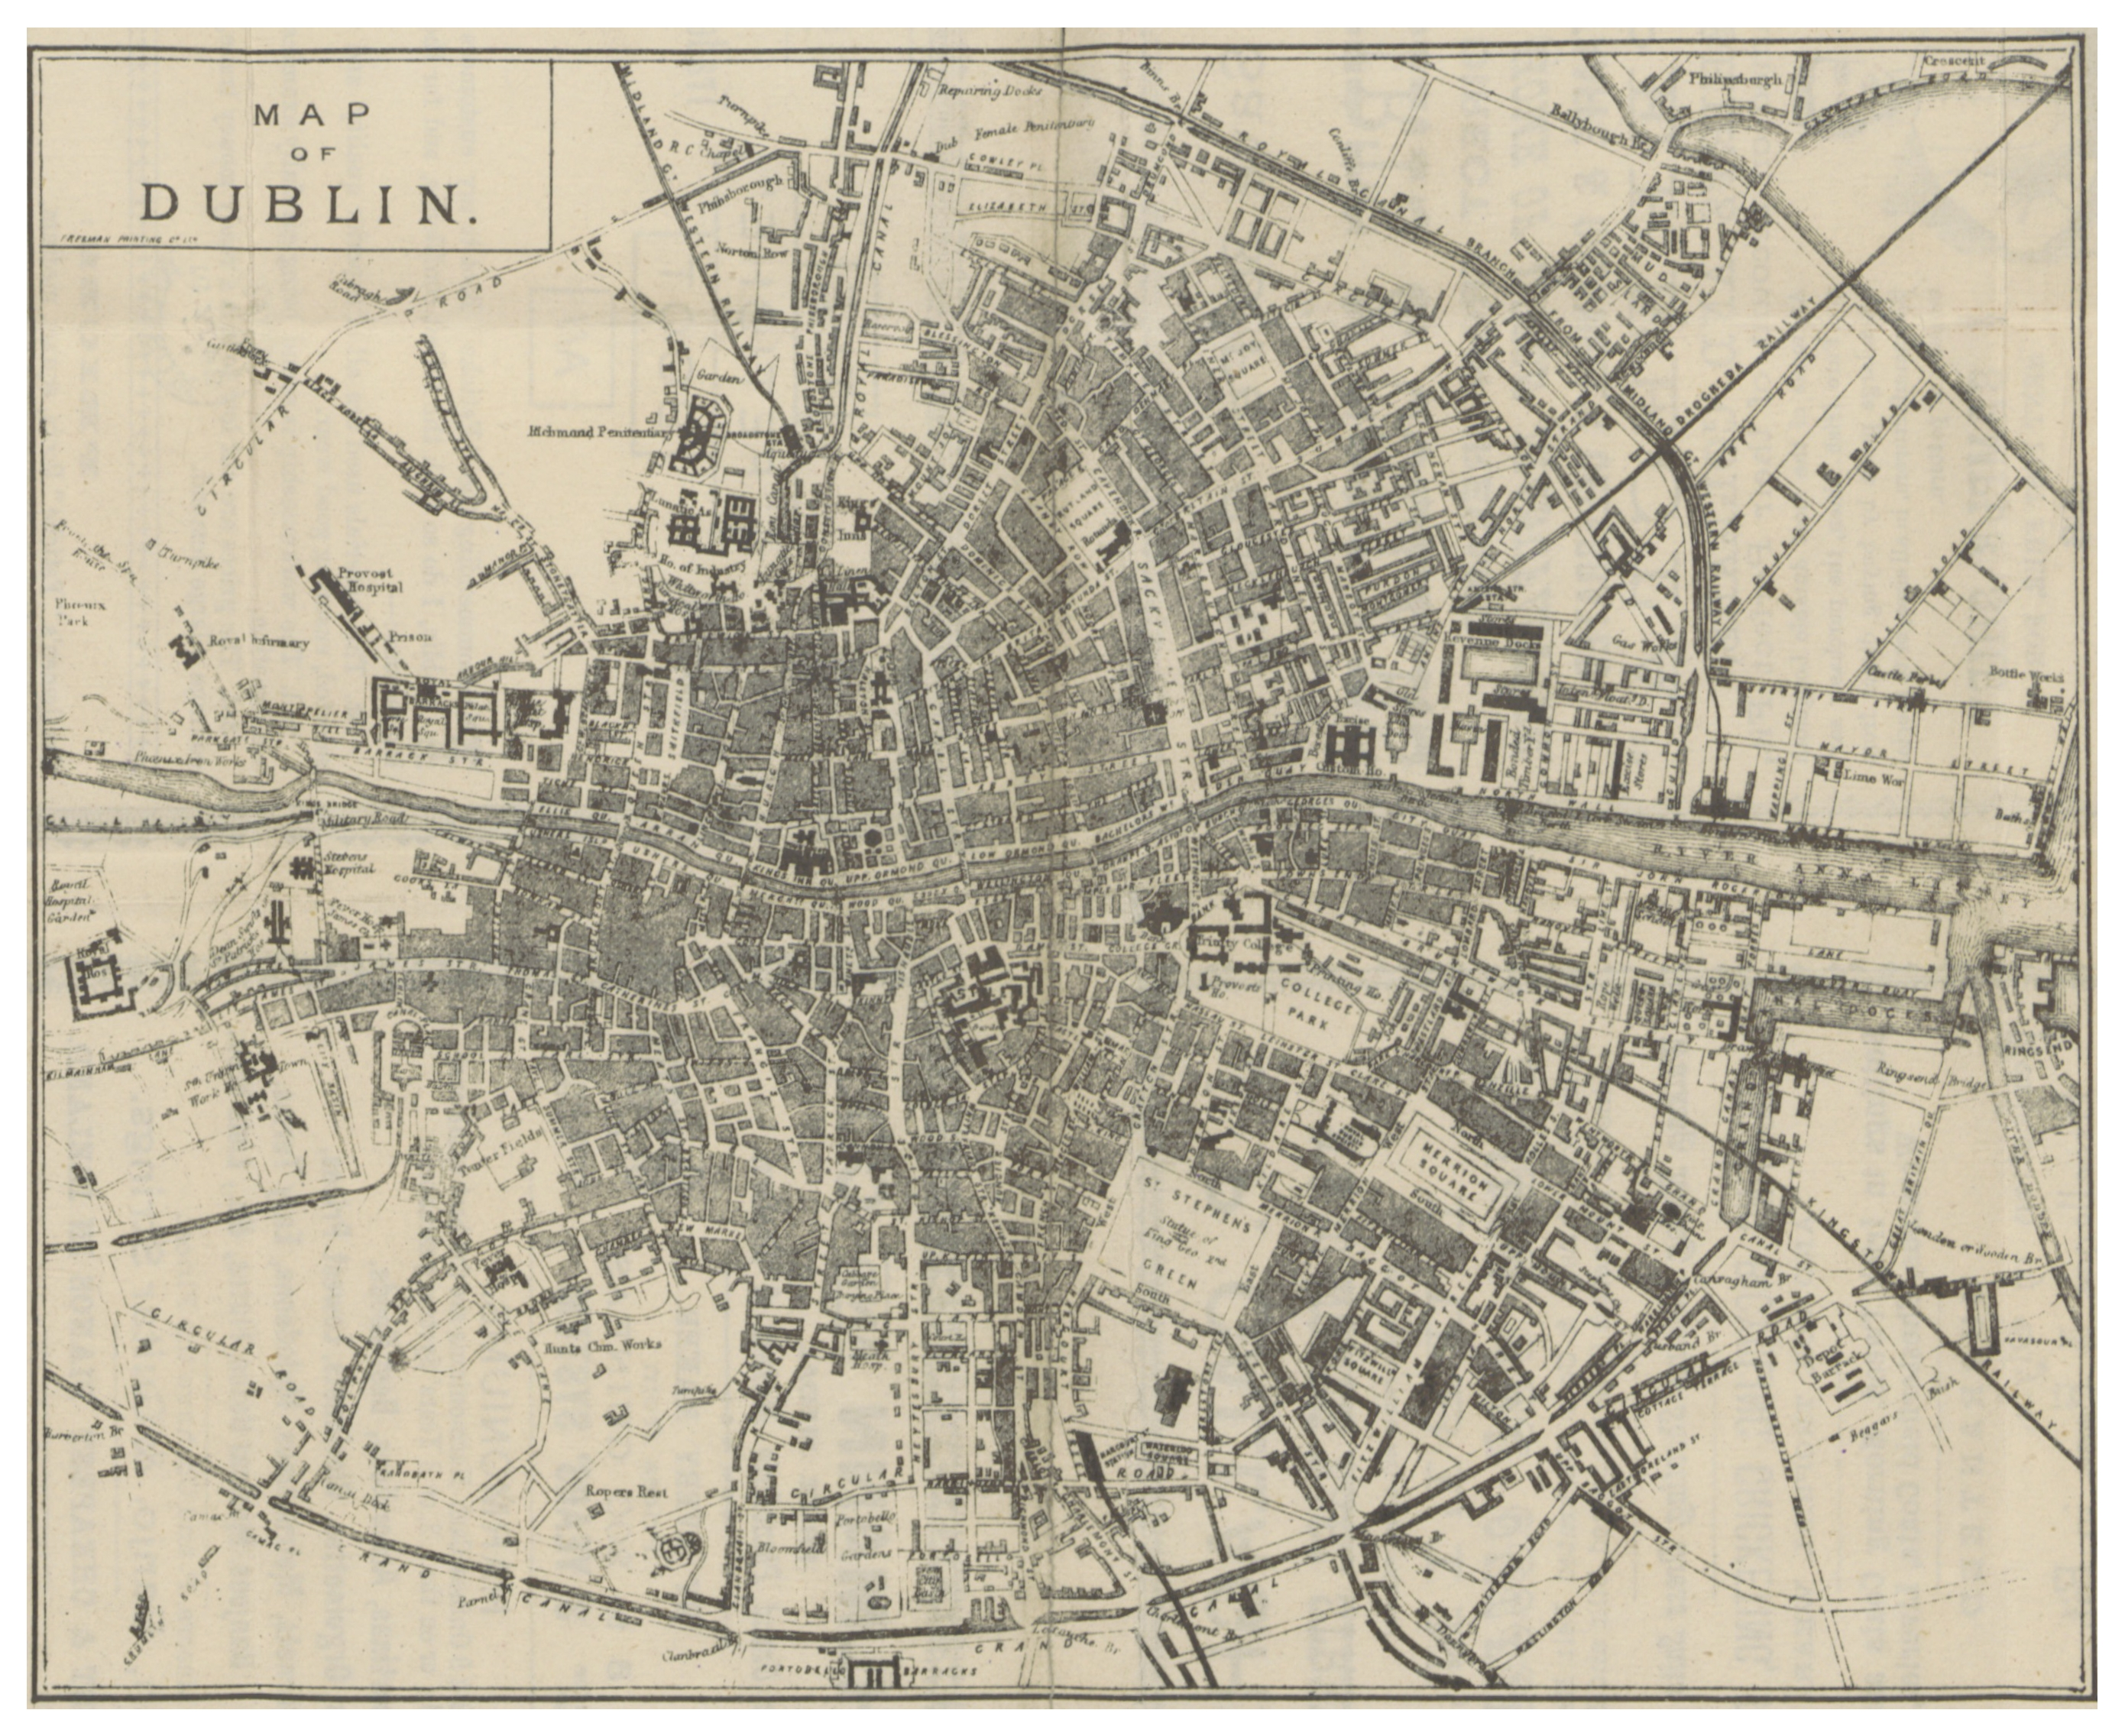 FileDINGNAM P MAP OF DUBLINjpg Wikimedia Commons - Old maps of dublin